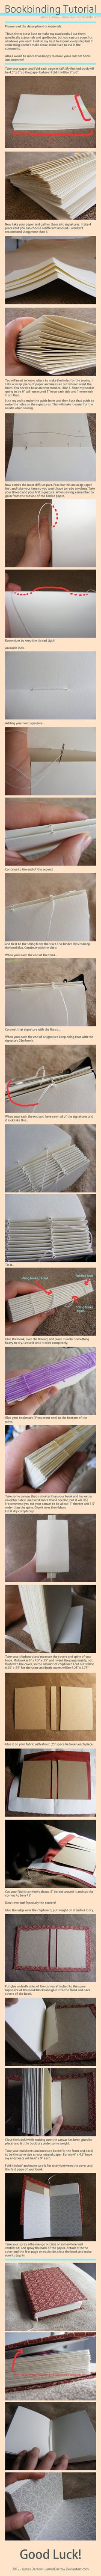 Bind a book... I really want to do this!